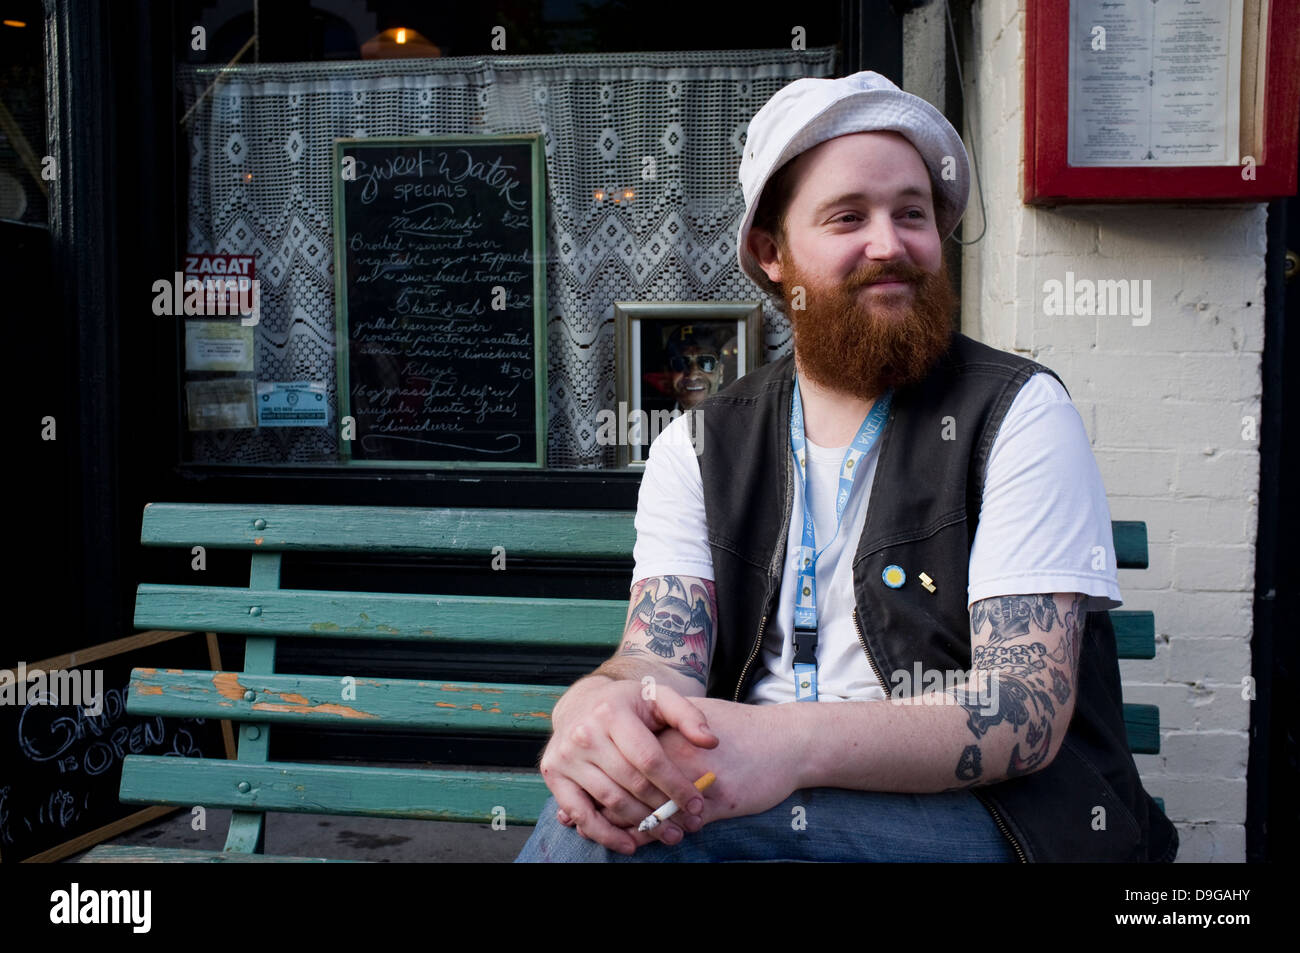 Hipster in Sweetwater Bar and Grill, Williamsburg, Brooklyn, New